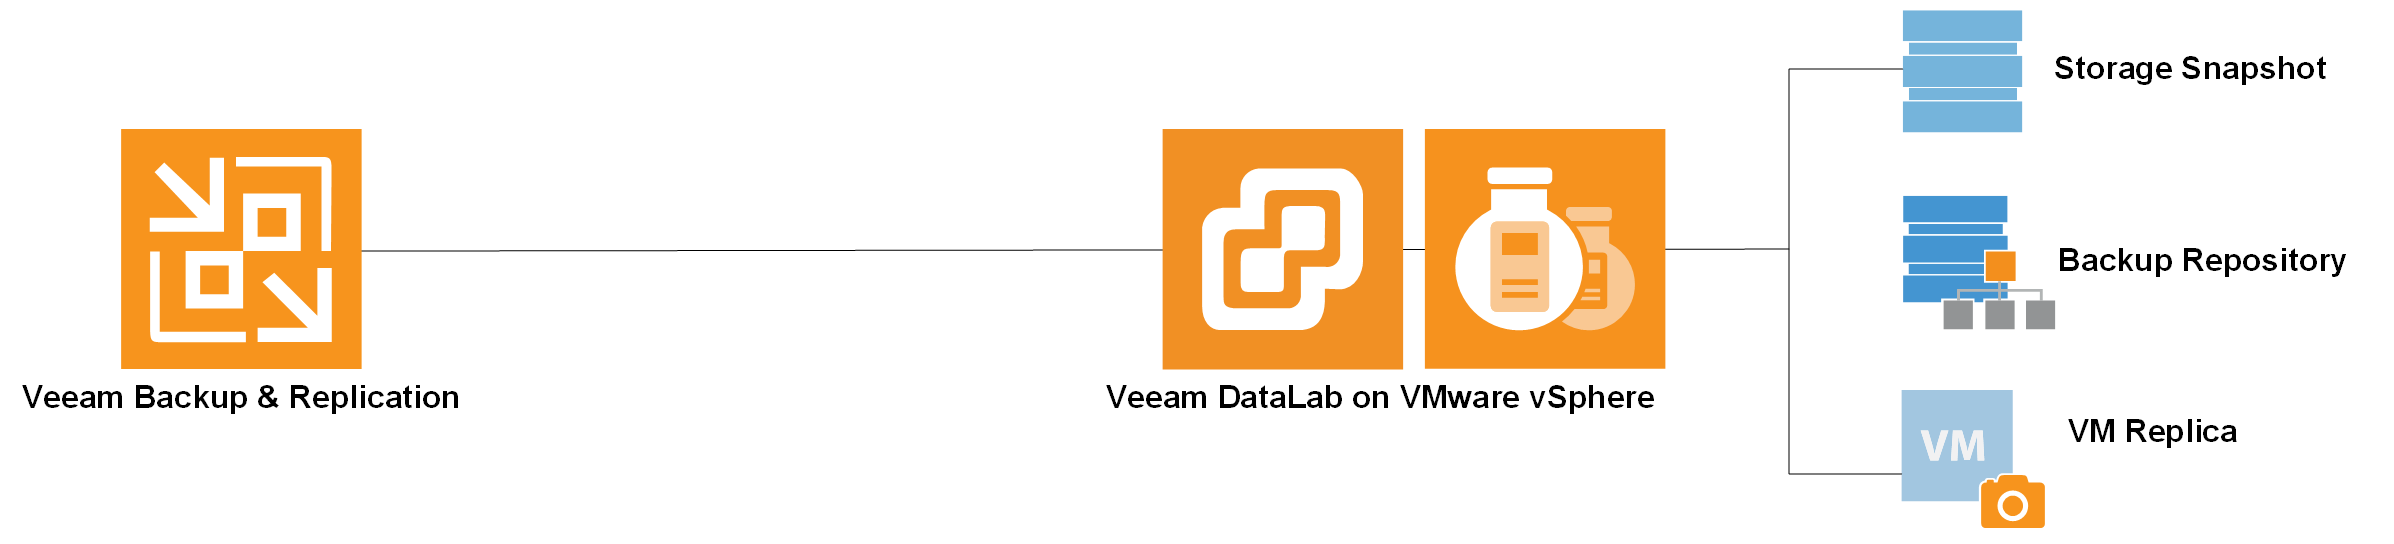 patch testing veeam backup datalabs